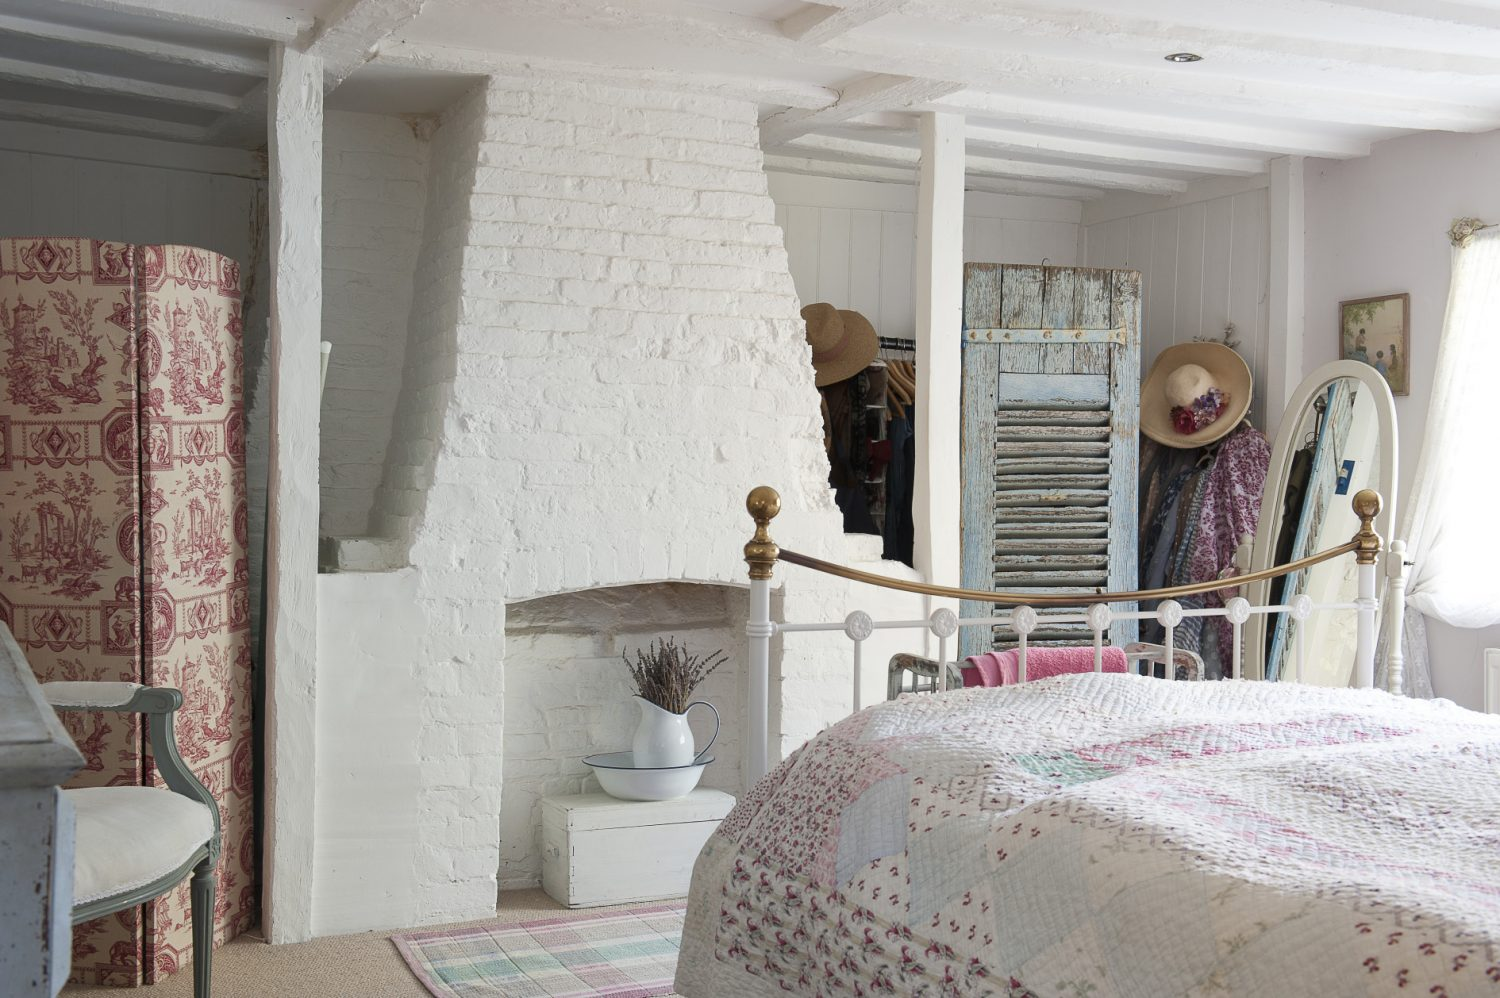 The bricks of a disused fireplace in an upstairs bedroom have been painted white to reflect the light – and avoid the gloominess associated with low, beamed ceilings. A Victorian-style bed is draped with a lovely handmade spread from Love Lane Vintage